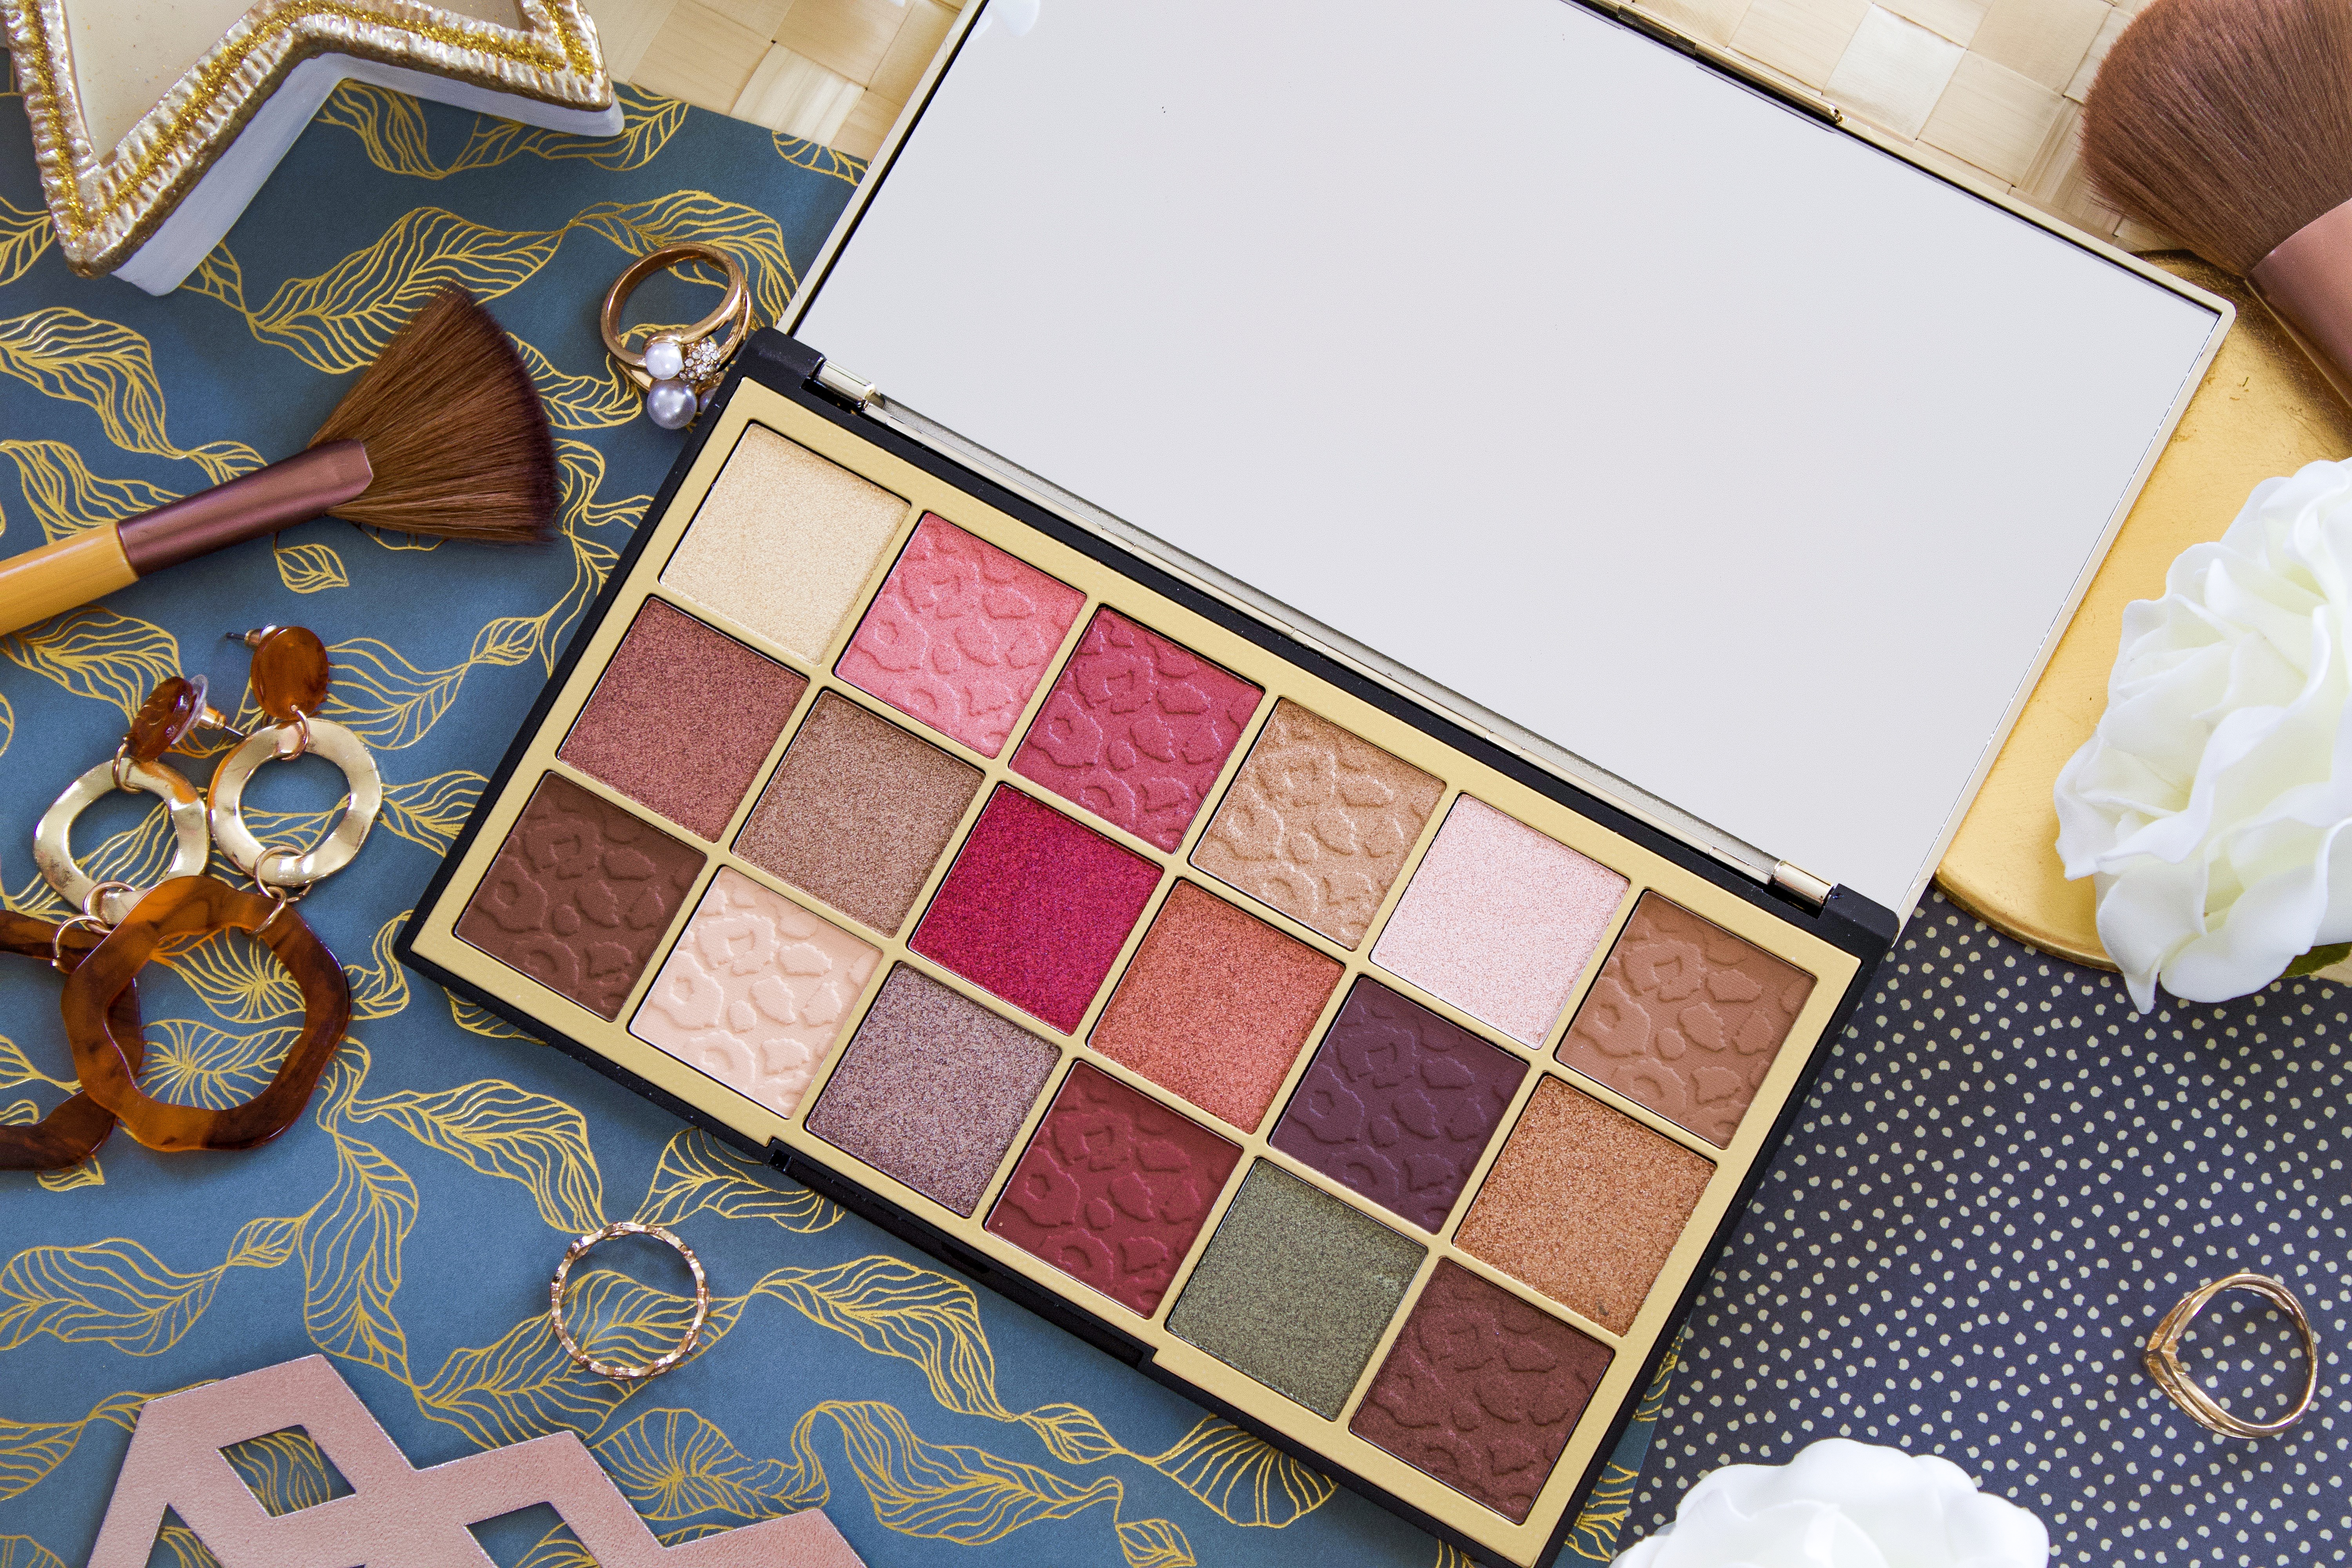 MAKEUP REVOLUTION: WILD ANIMAL COURAGE PALETTE REVIEW, SWATCHES & PHOTOS